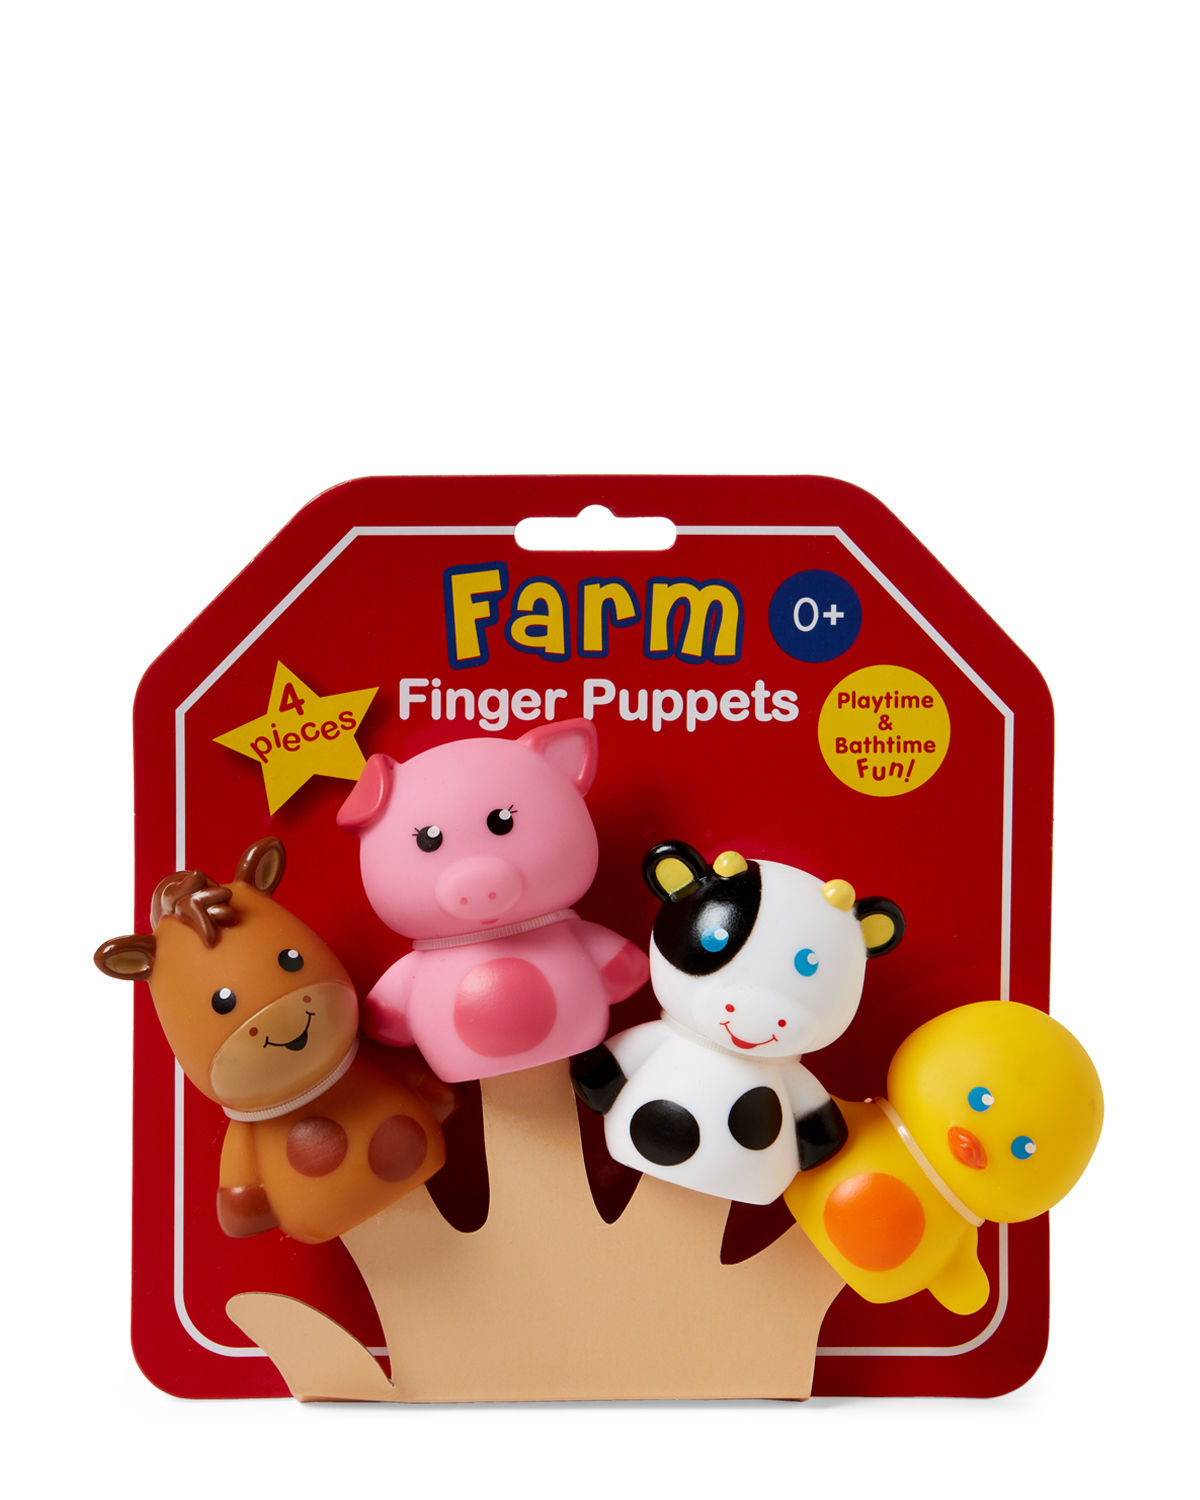 4-Piece Farm Finger Puppets